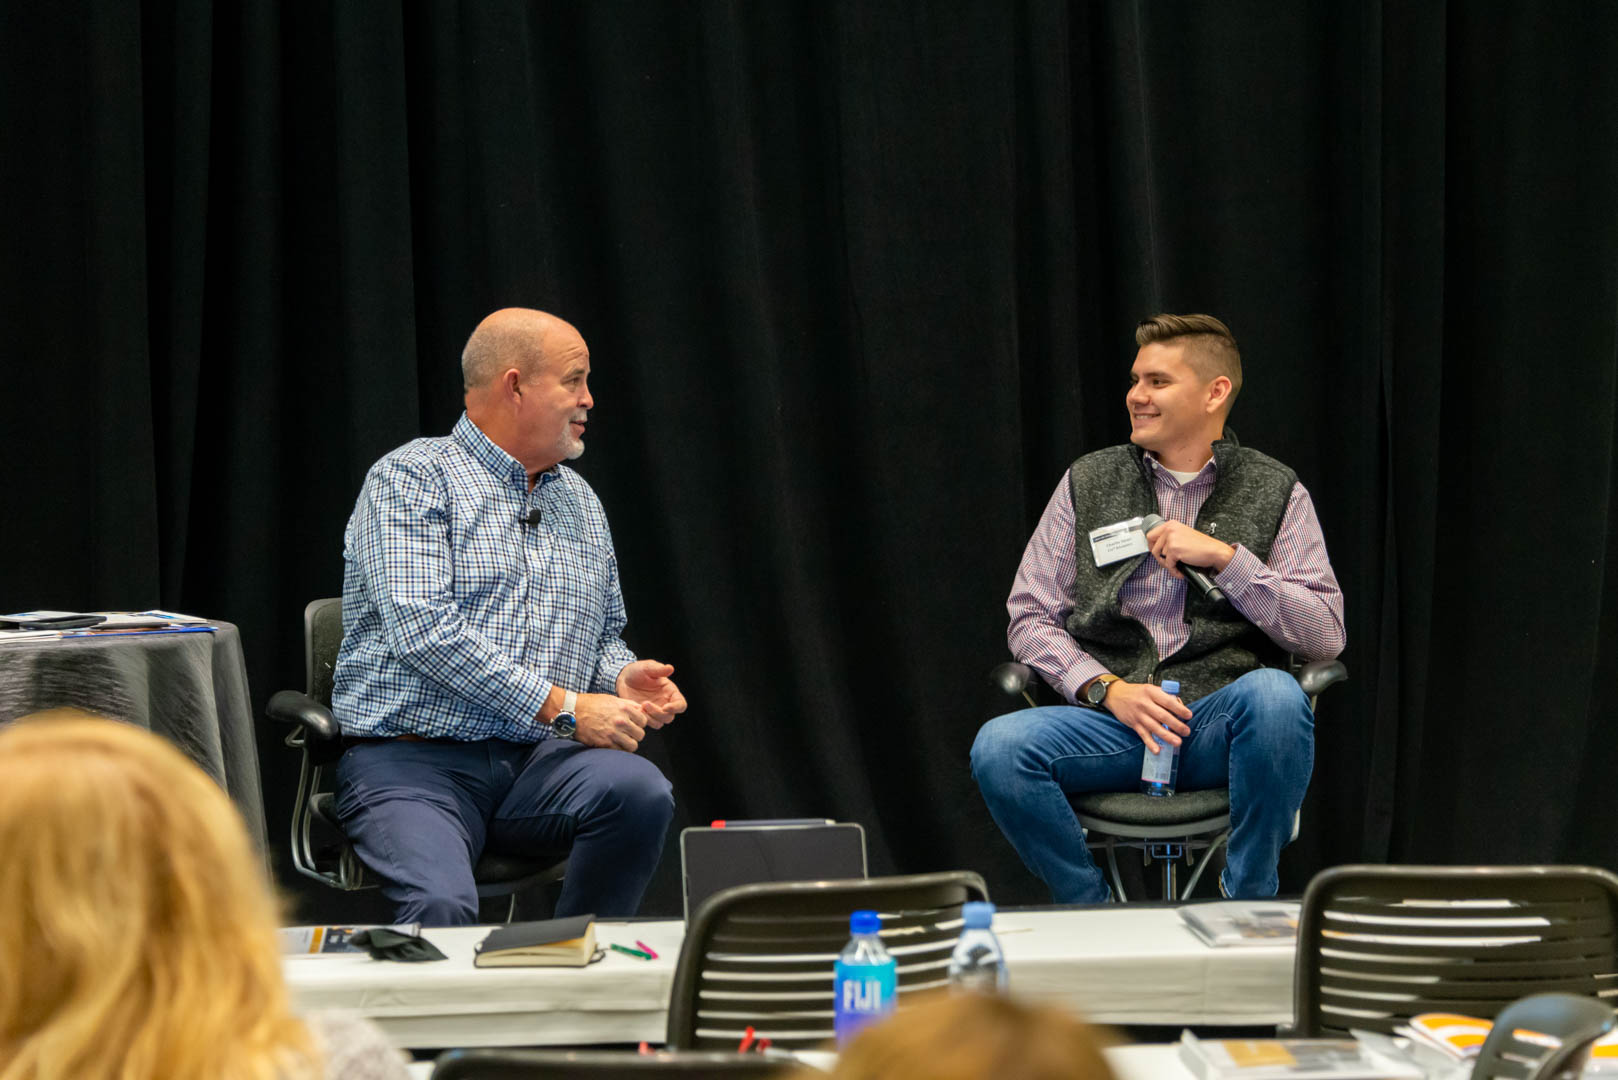 CU*Answers CEO Randy Karnes (left) is joined on stage by Charlie Dean of Lender*VP.